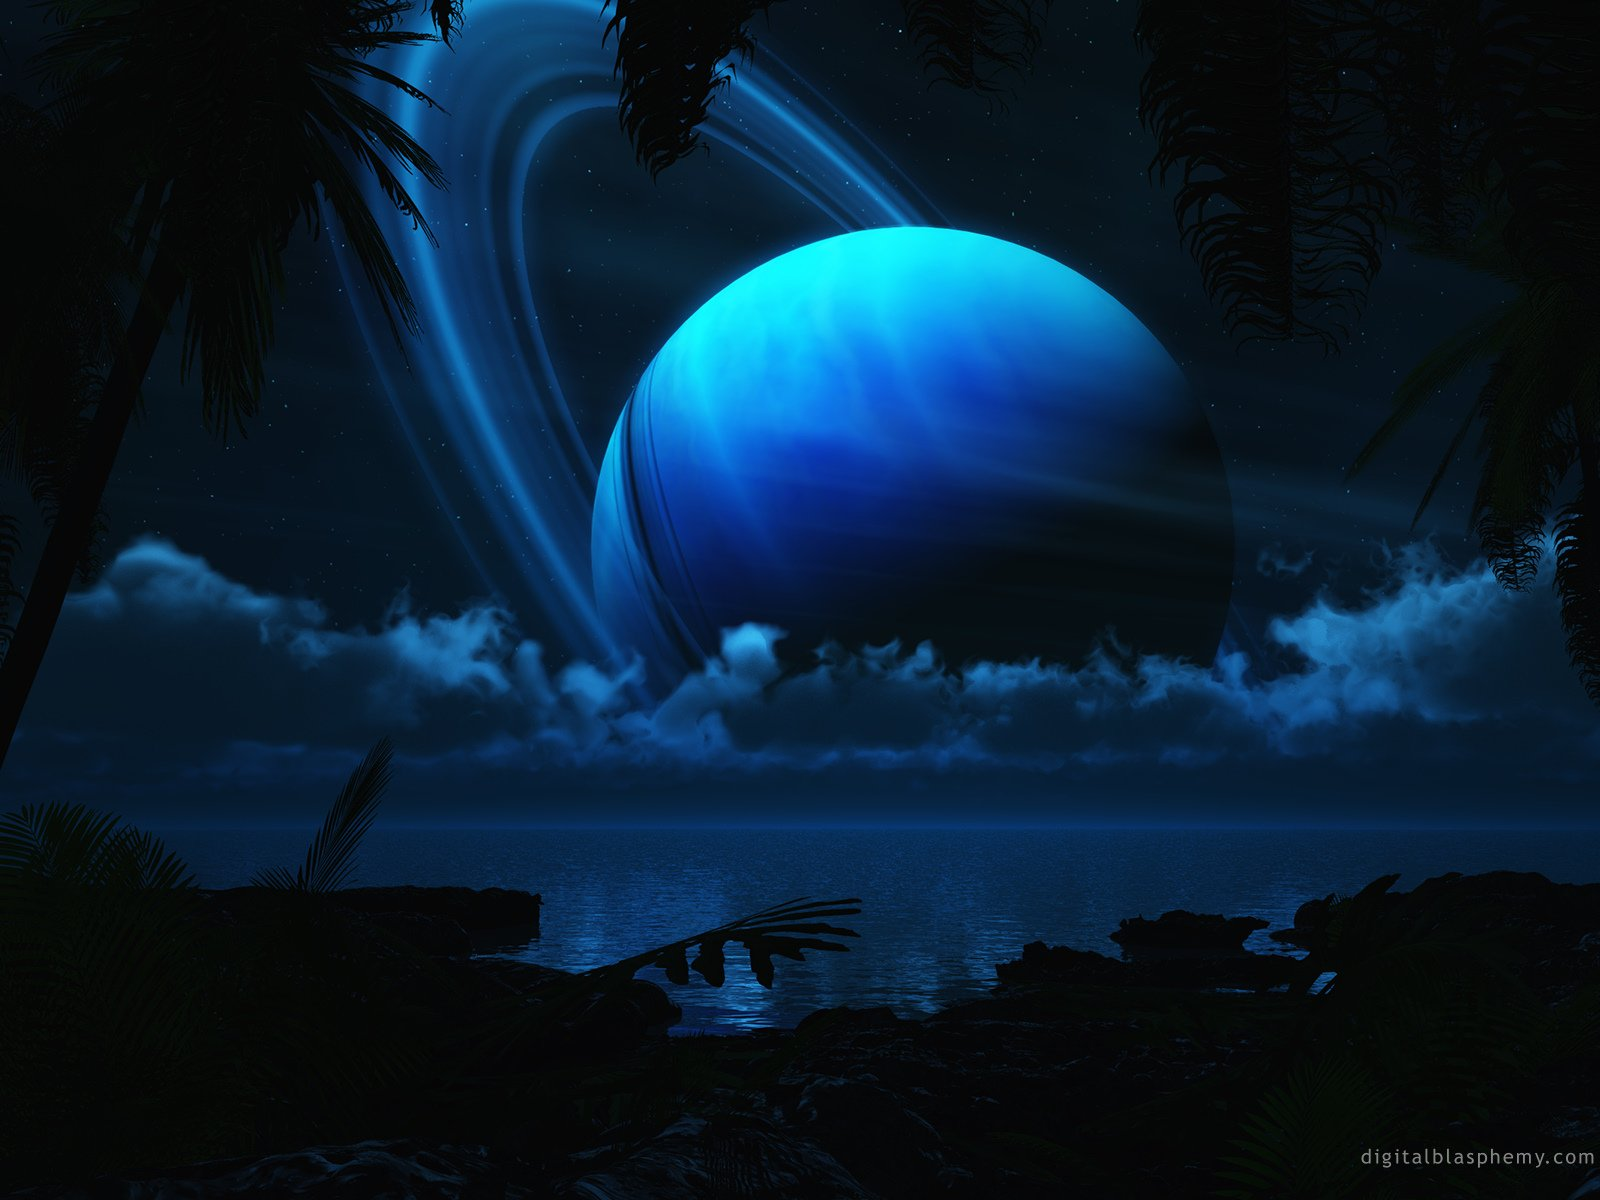 have read this article Wallpaper 3D with the title Moon 3D Wallpaper 1600x1200